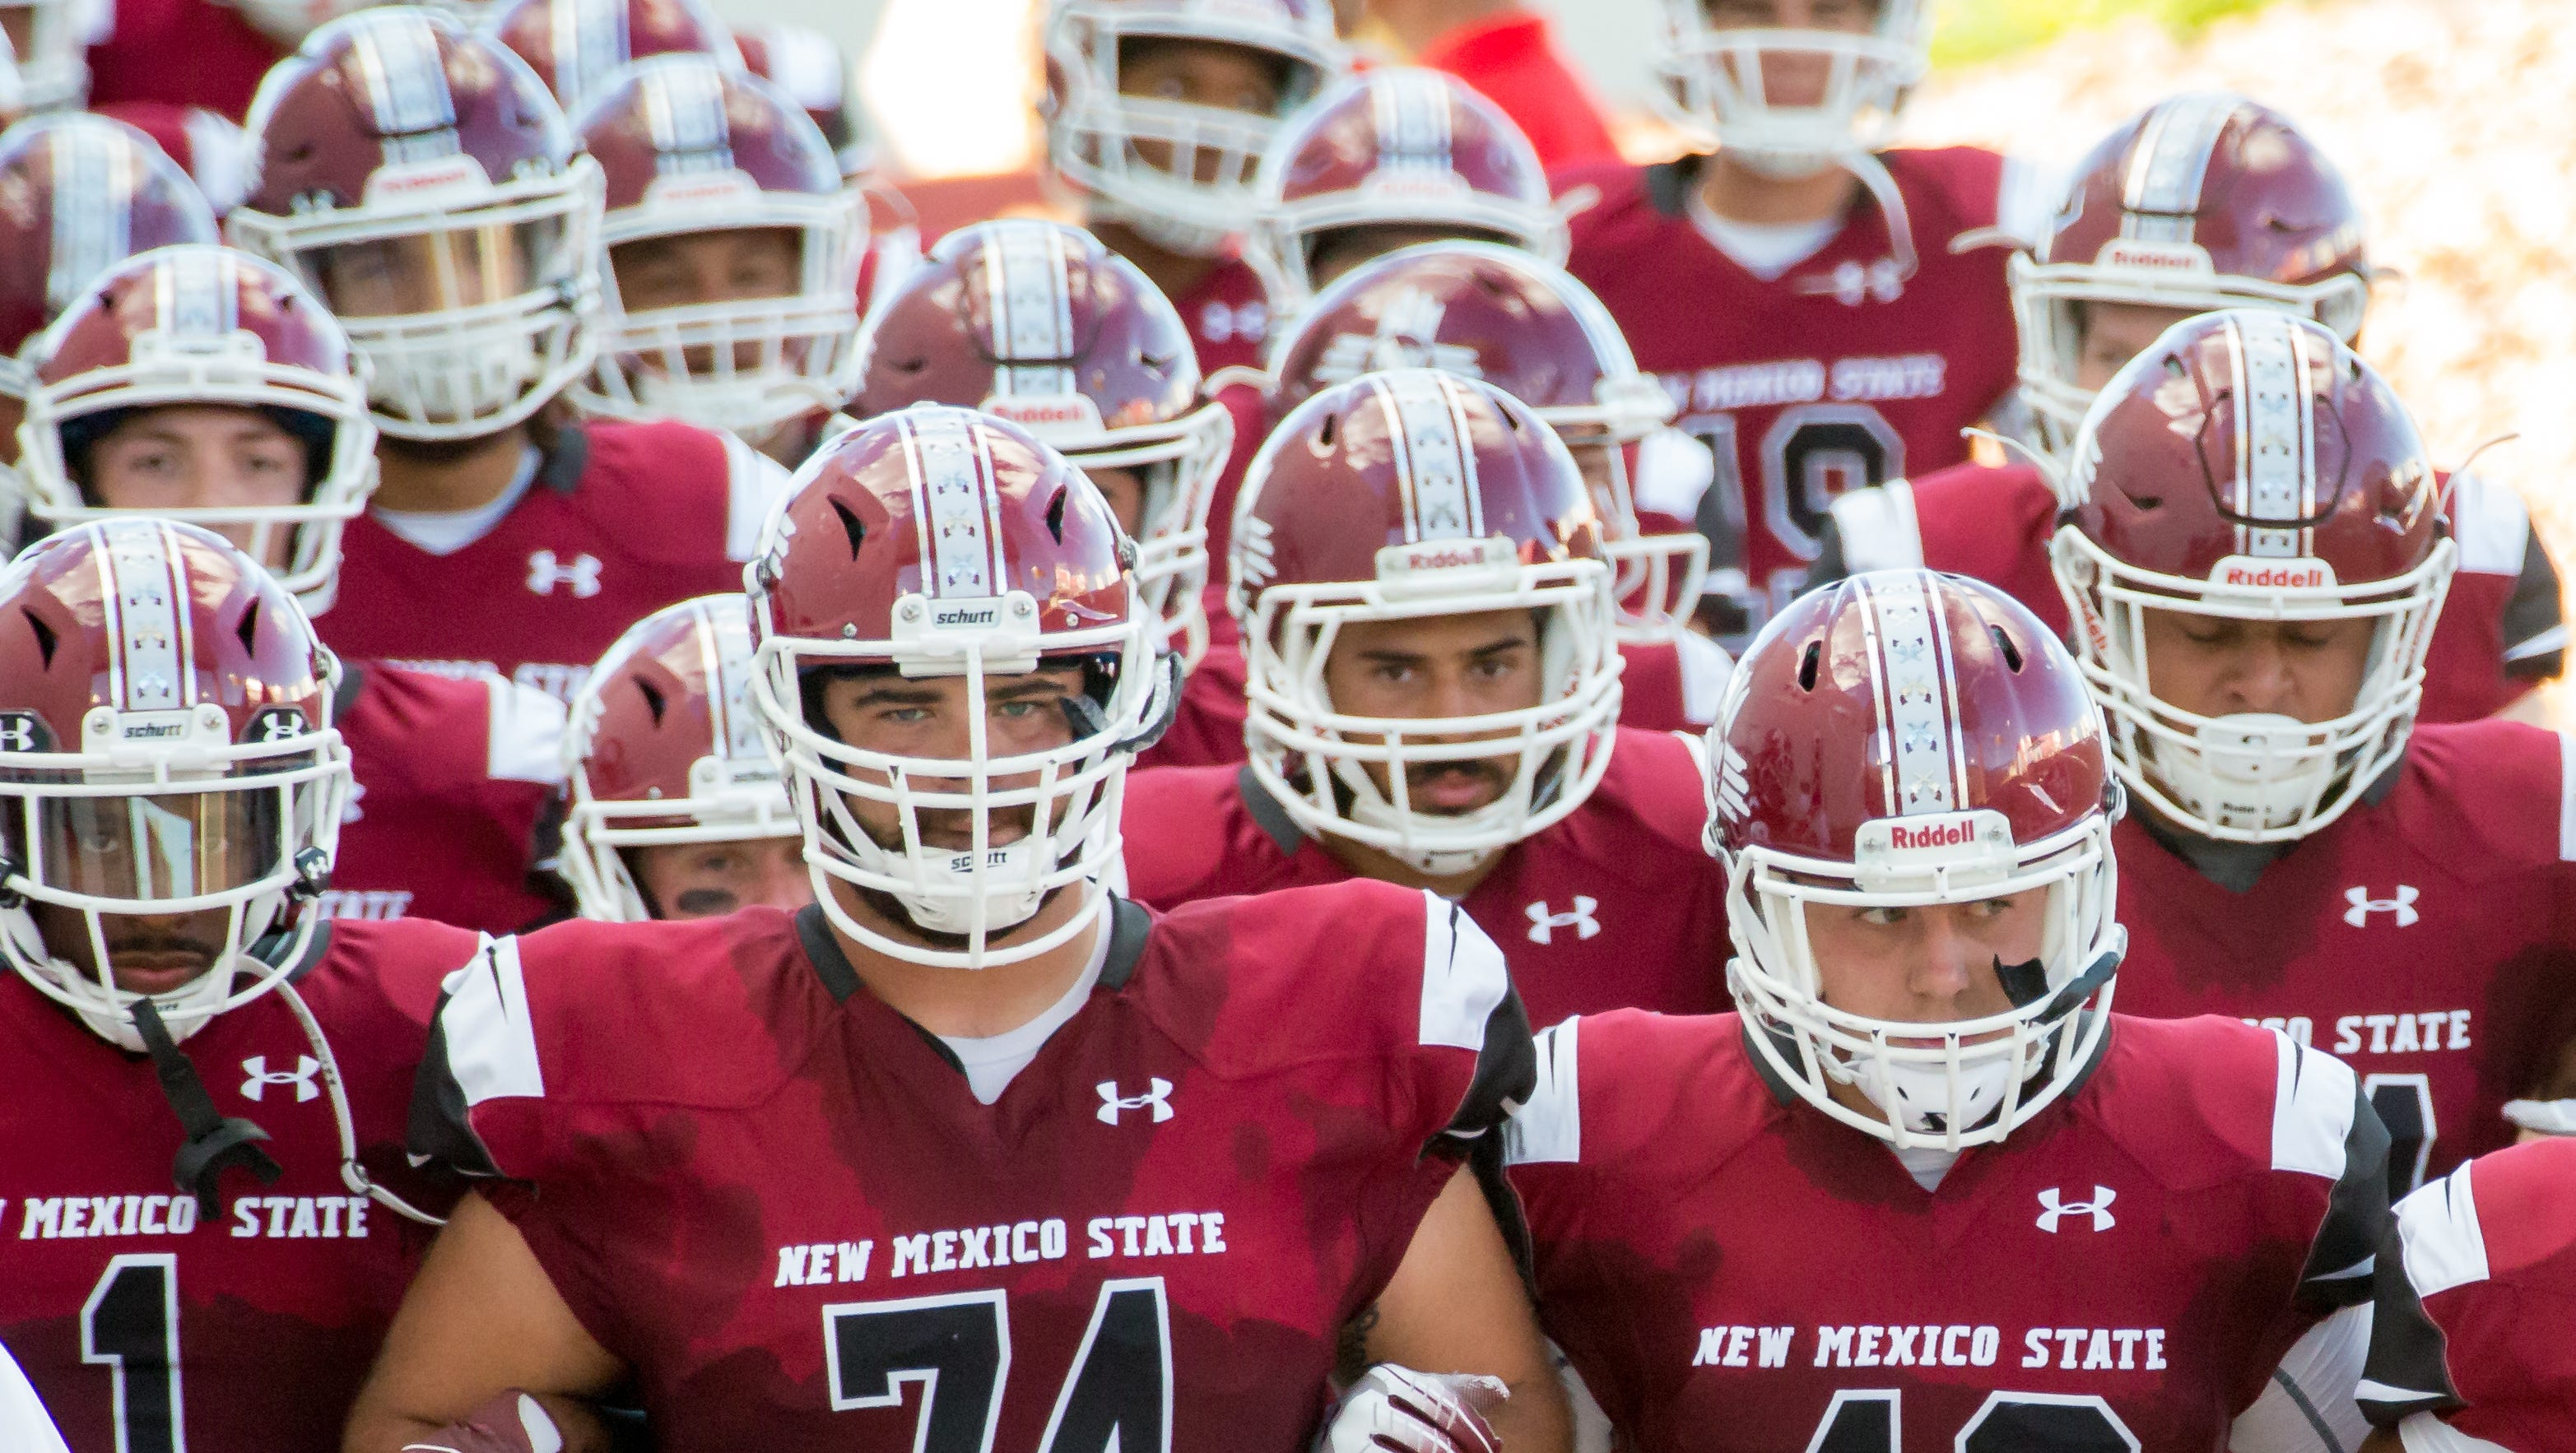 New Mexico State University takes the field on Saturday, September 15, 2018 during the NMSU/UNM game at Aggie <emorial Stadium.